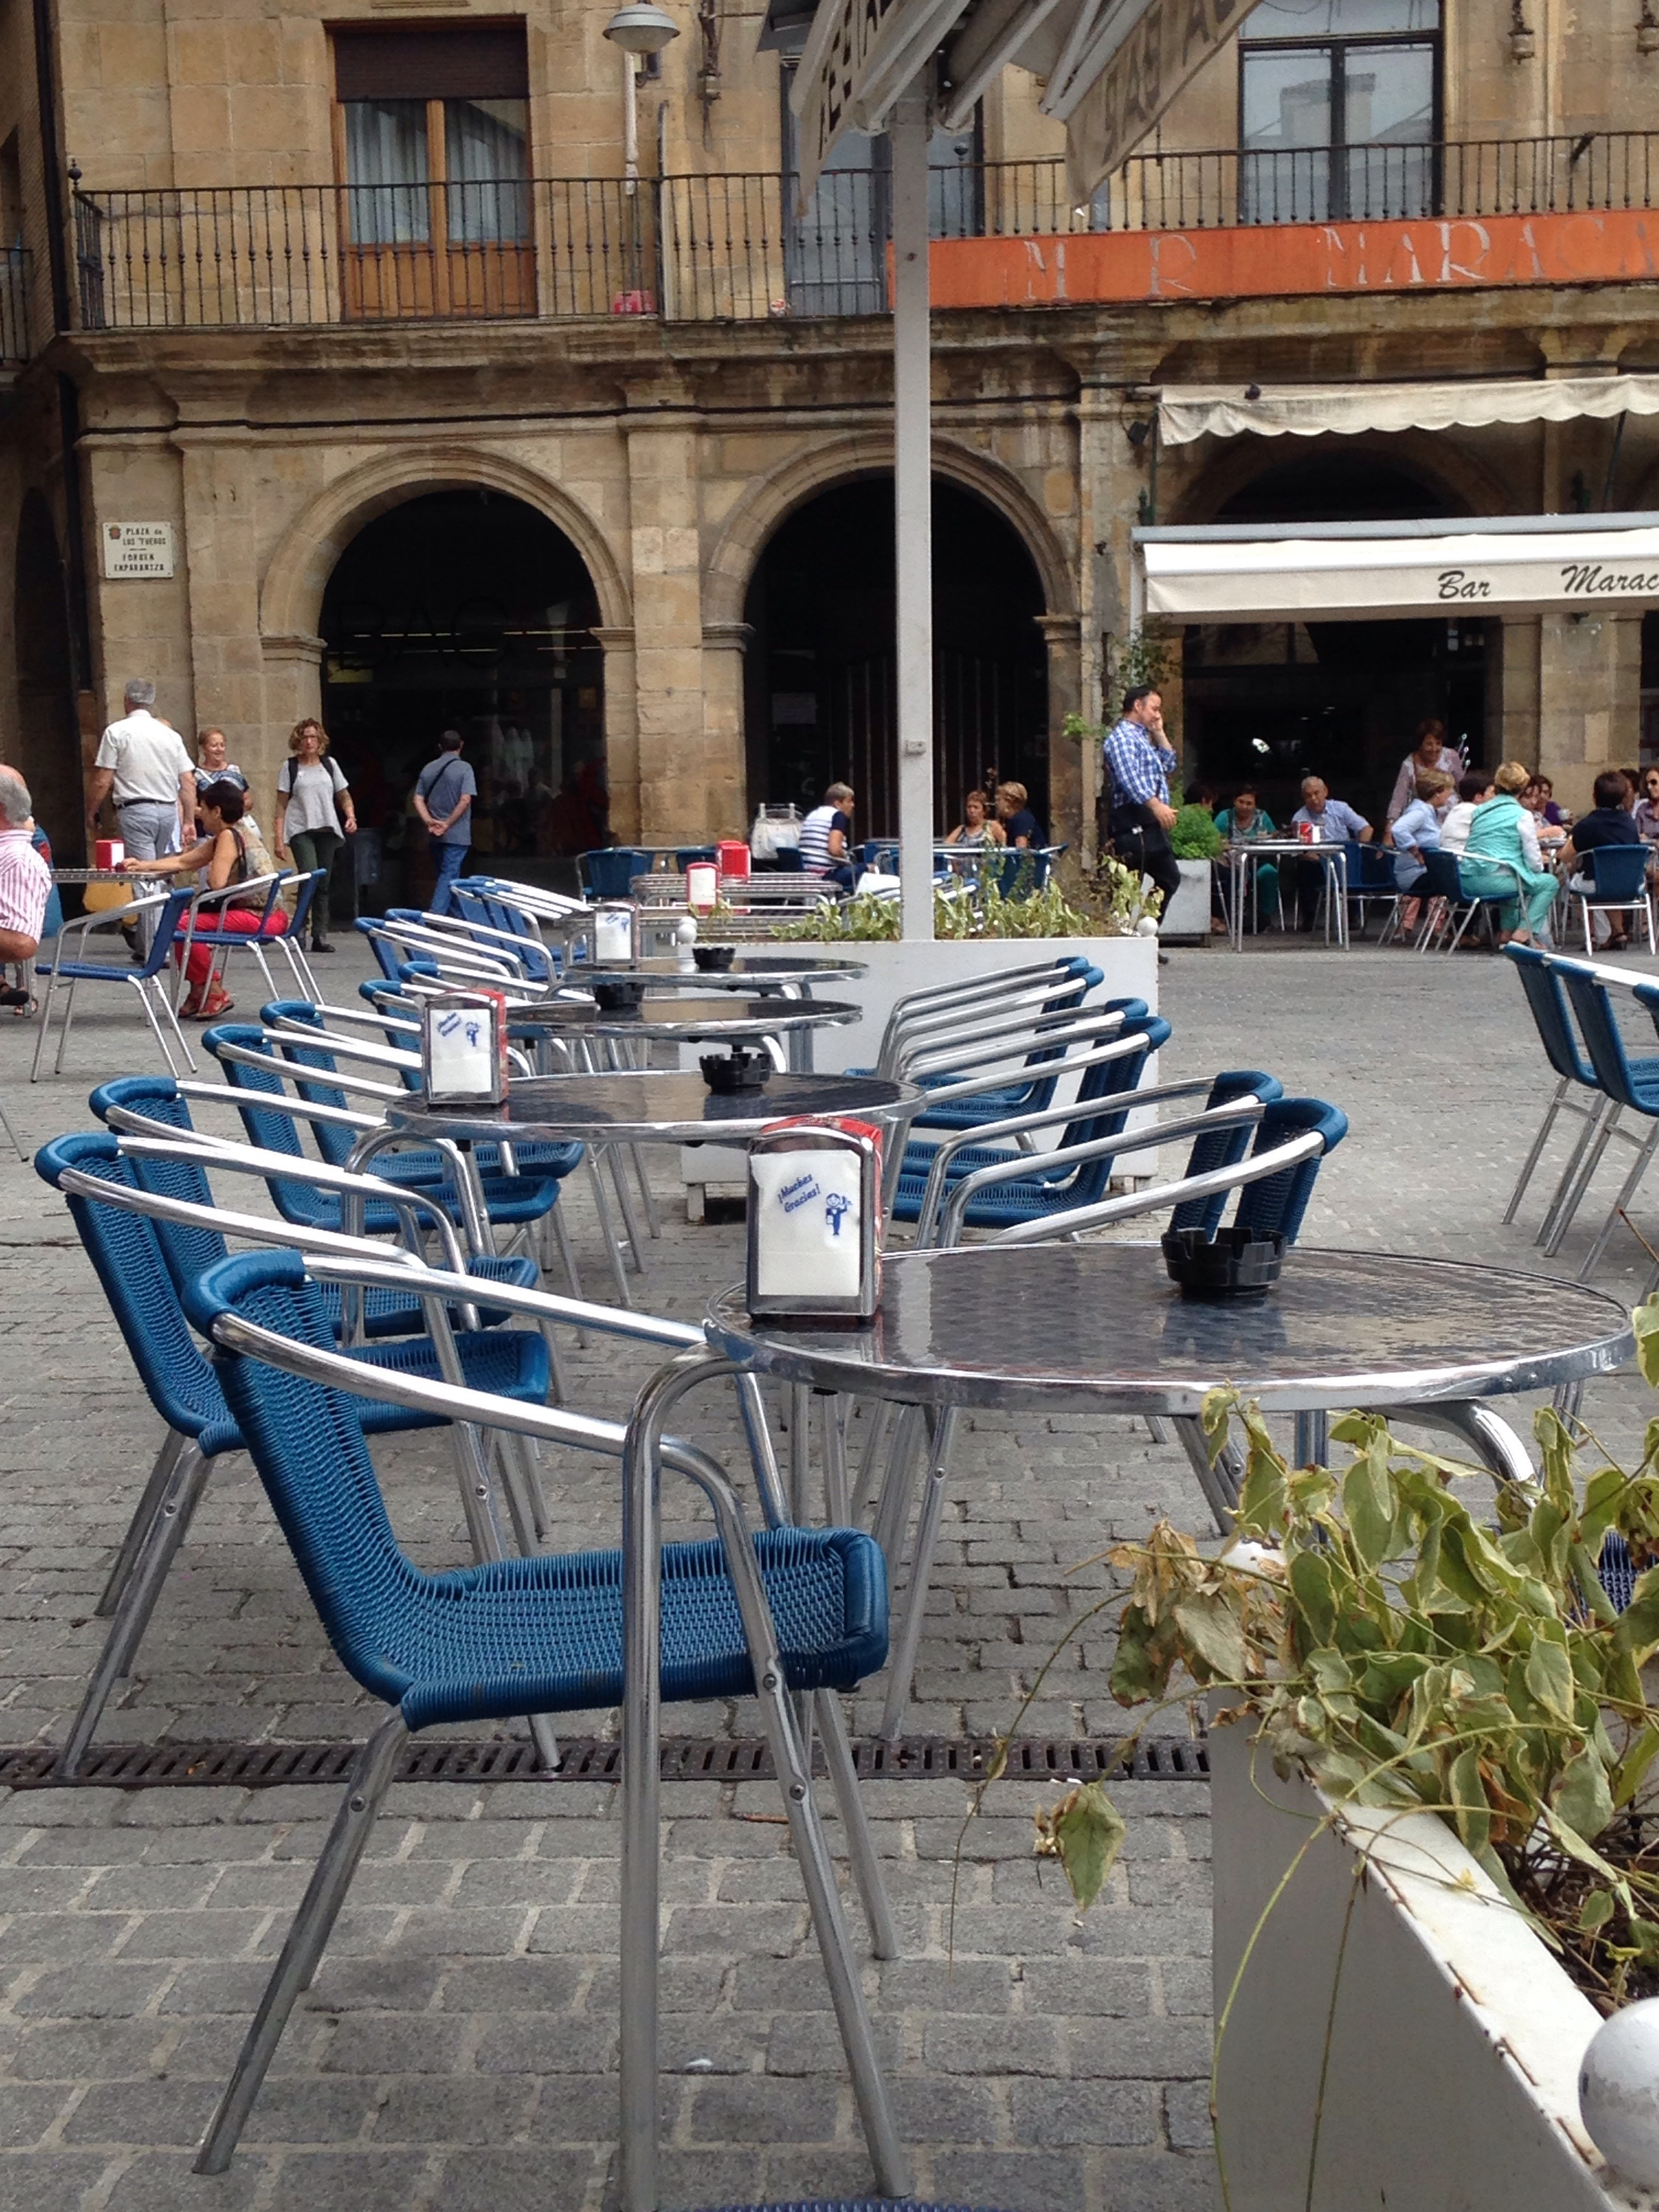 Cafe chairs in Plaza Fueros